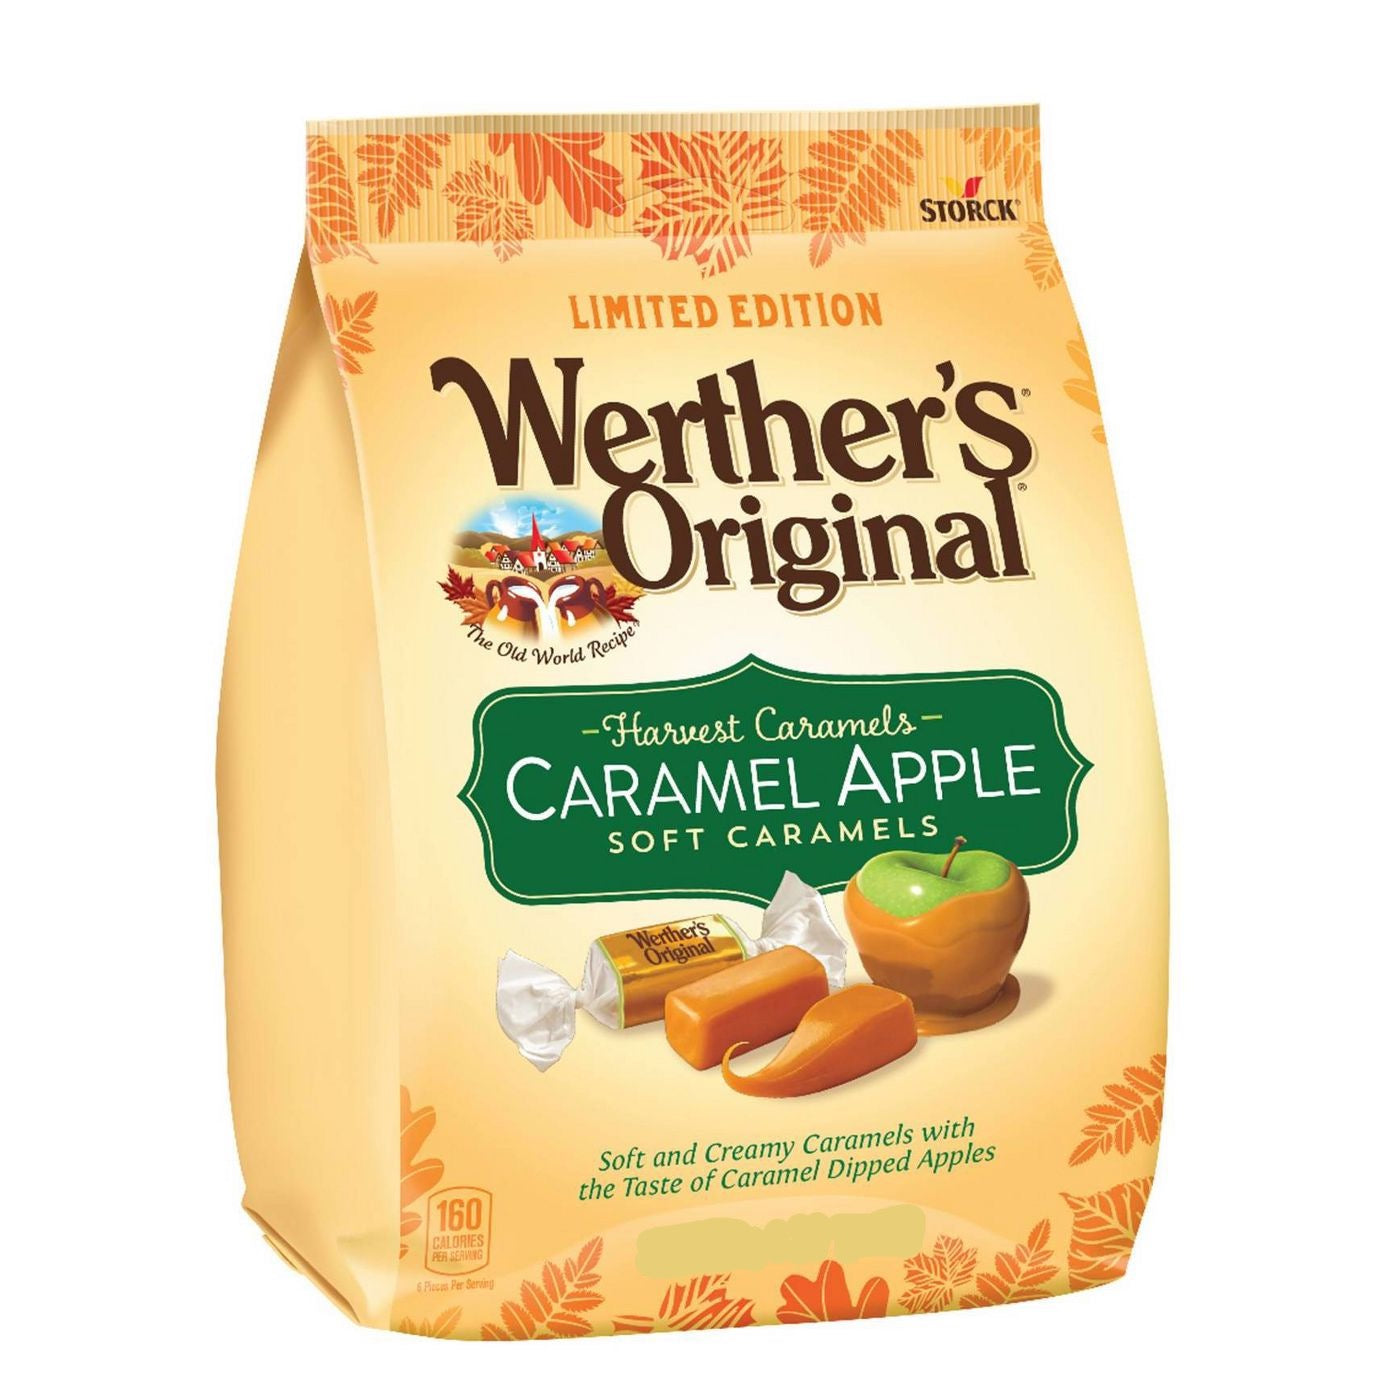 Werther's Originals, Harvest Caramels, Caramel Apple Soft Caramels, 8.57oz